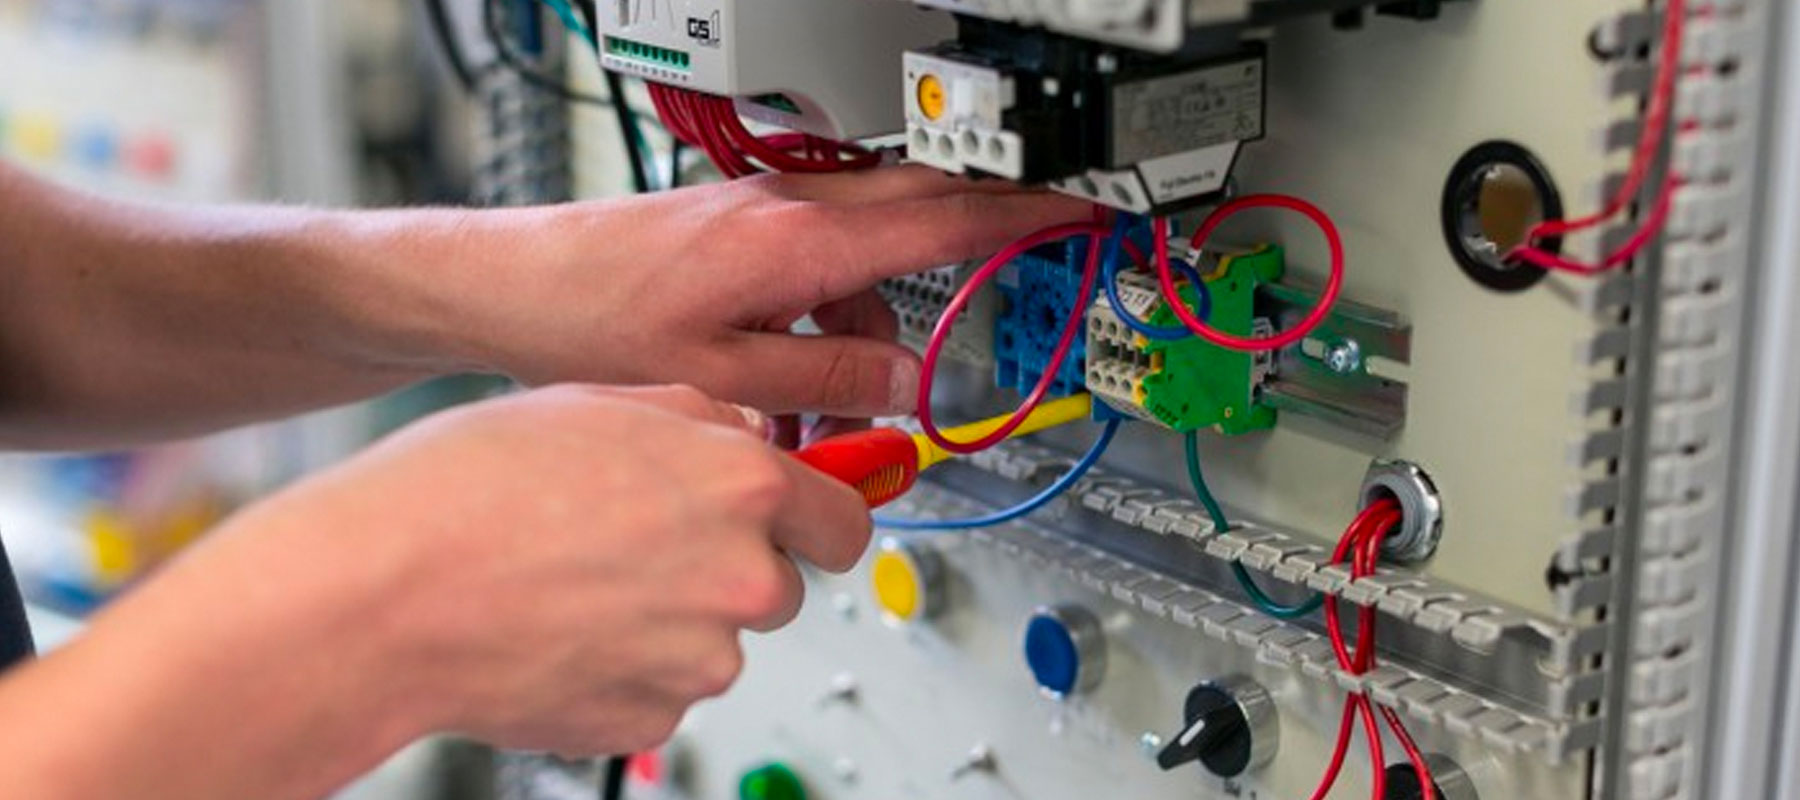 Electrical Repair Services West Hollywood | US Electrical